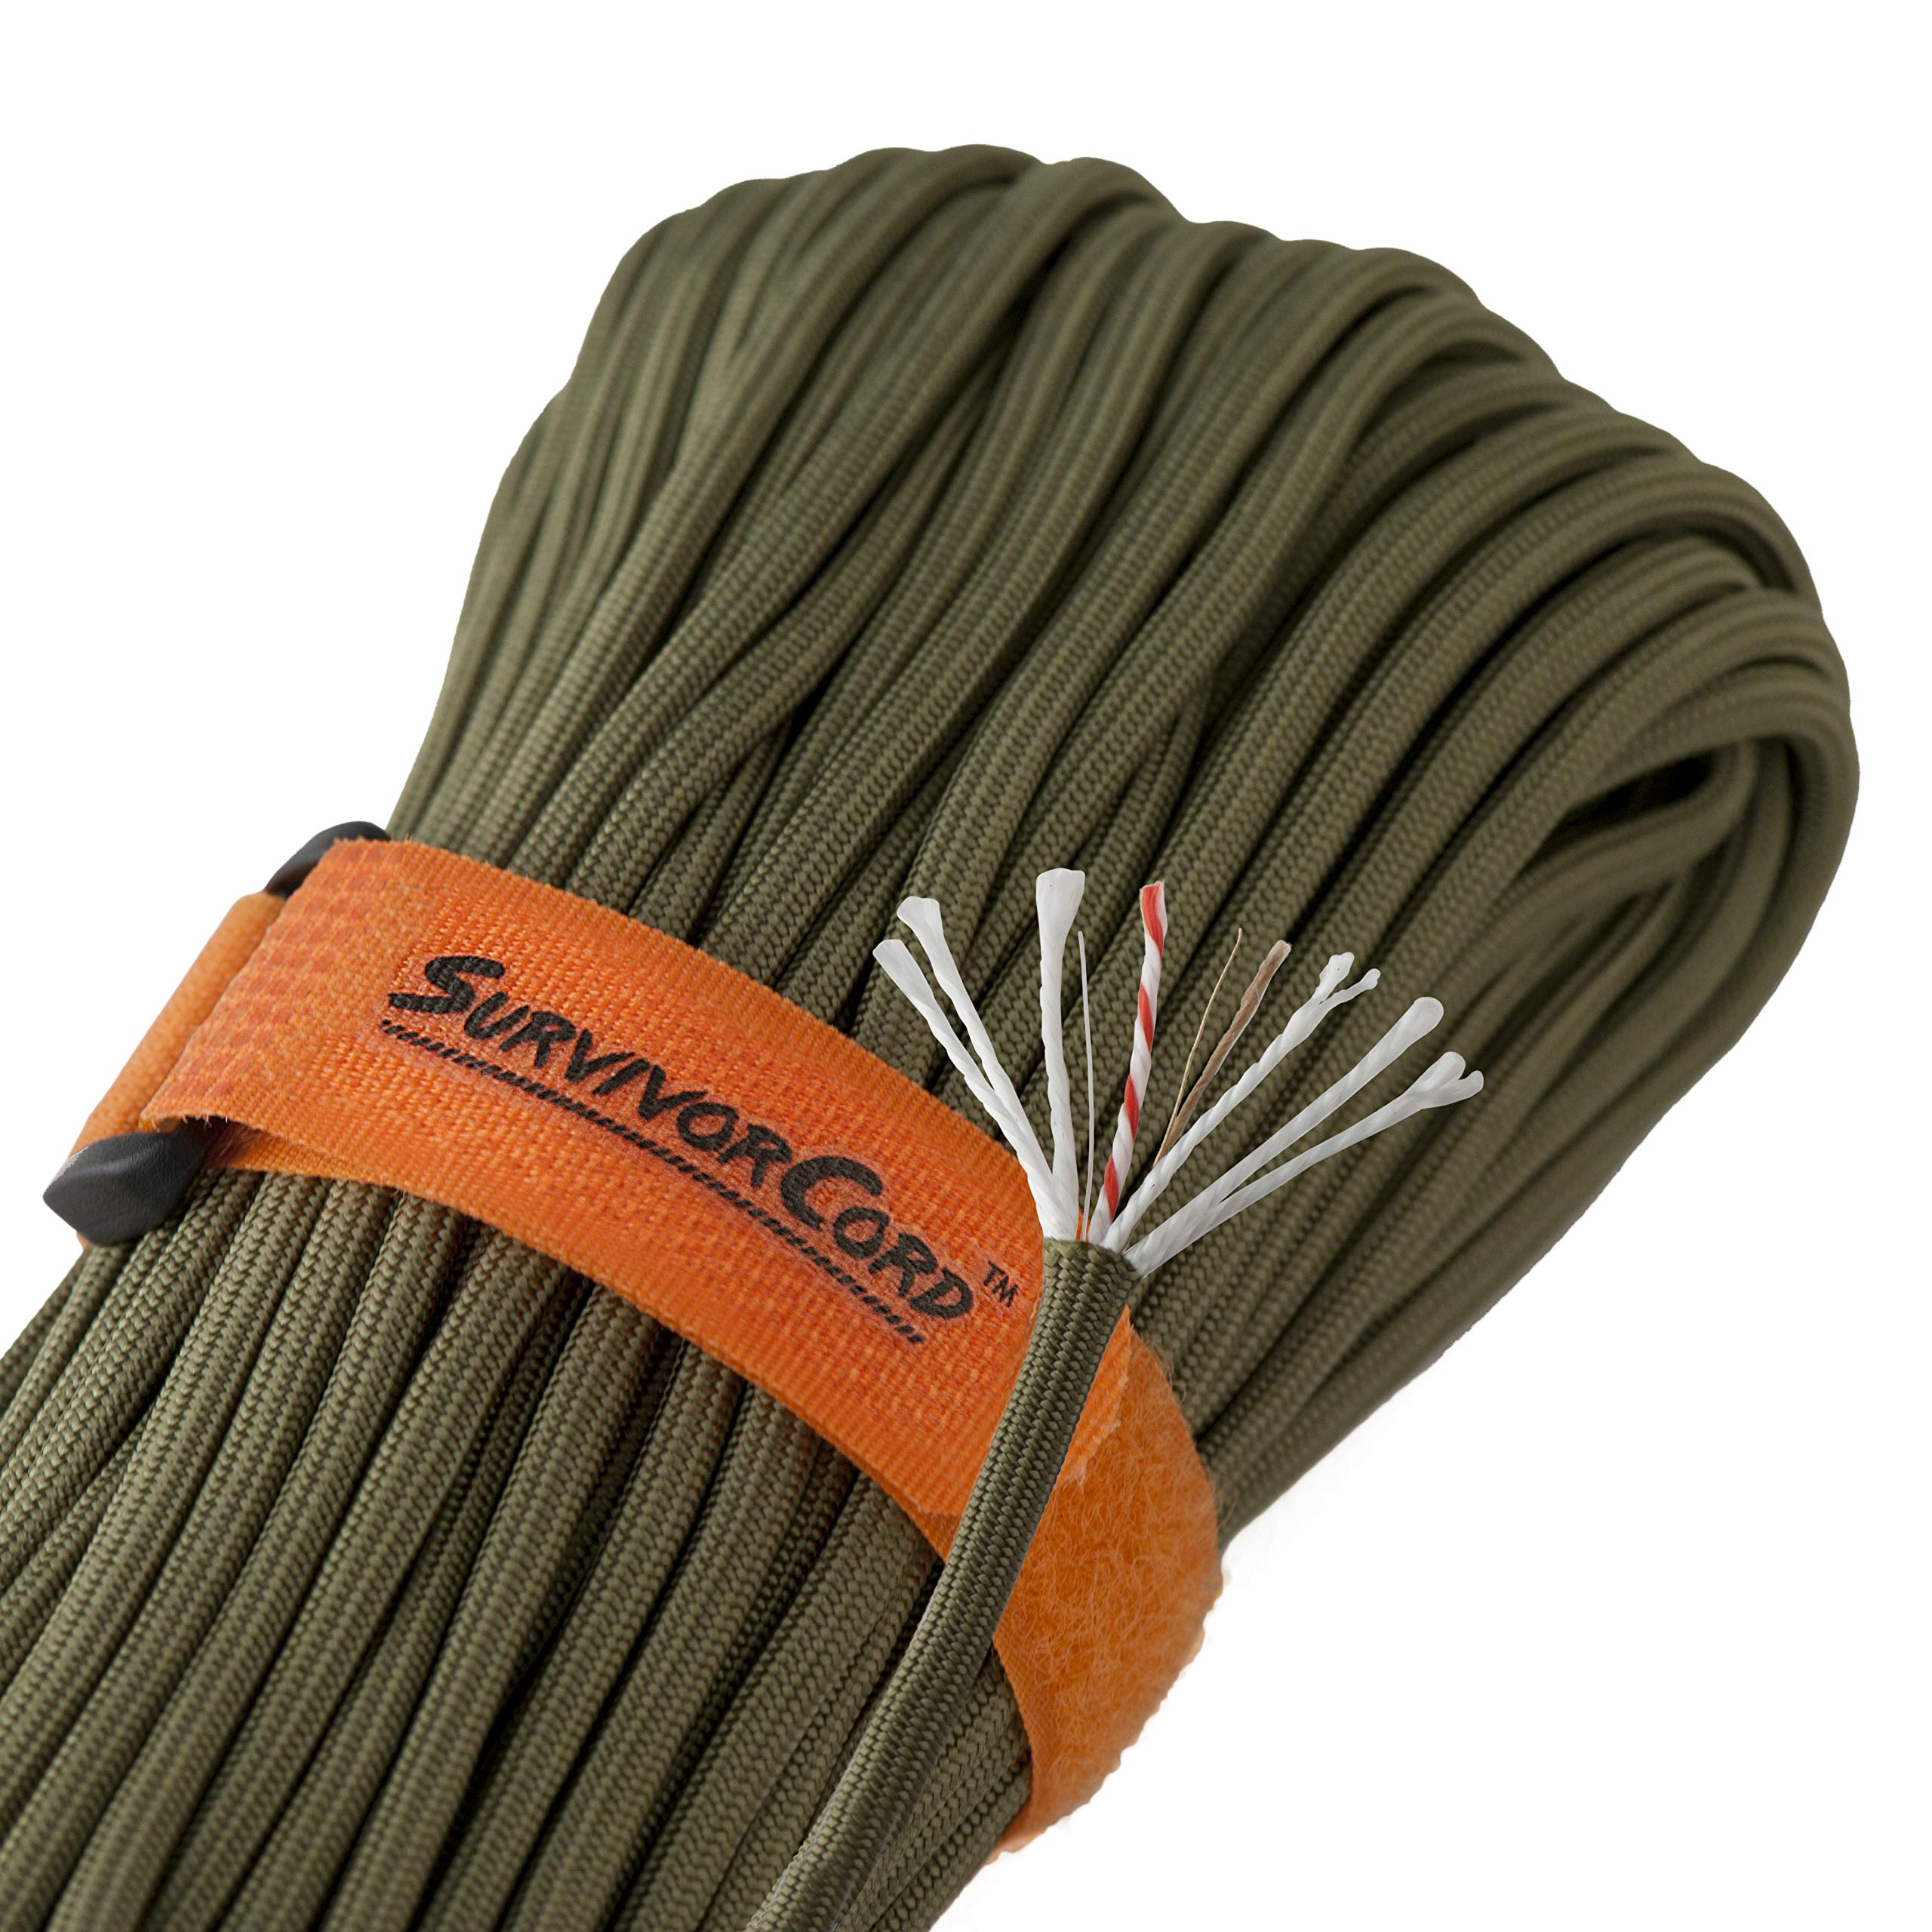 Titan SurvivorCord | Olive-DRAB | 103 Feet | Patented Military Type III 550 Paracord/Parachute Cord (3/16'' Diameter) with Integrated Fishing Line, Fire-Starter, and Utility Wire. by Titan Paracord